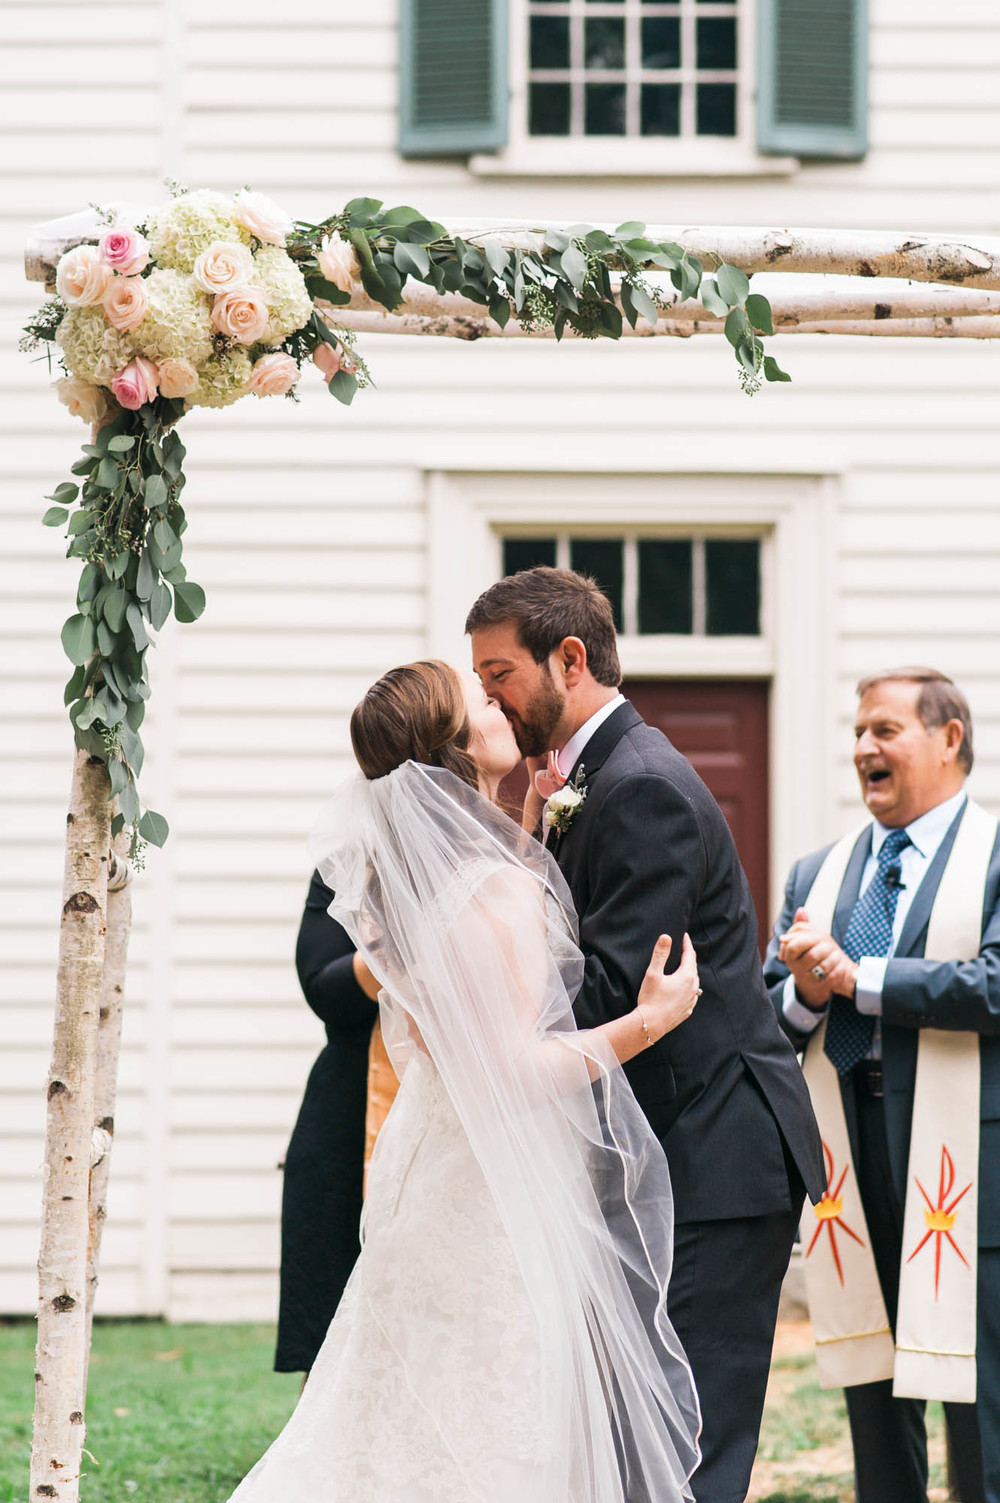 First Kiss Under a Chuppah // Nashville Wedding Flowers